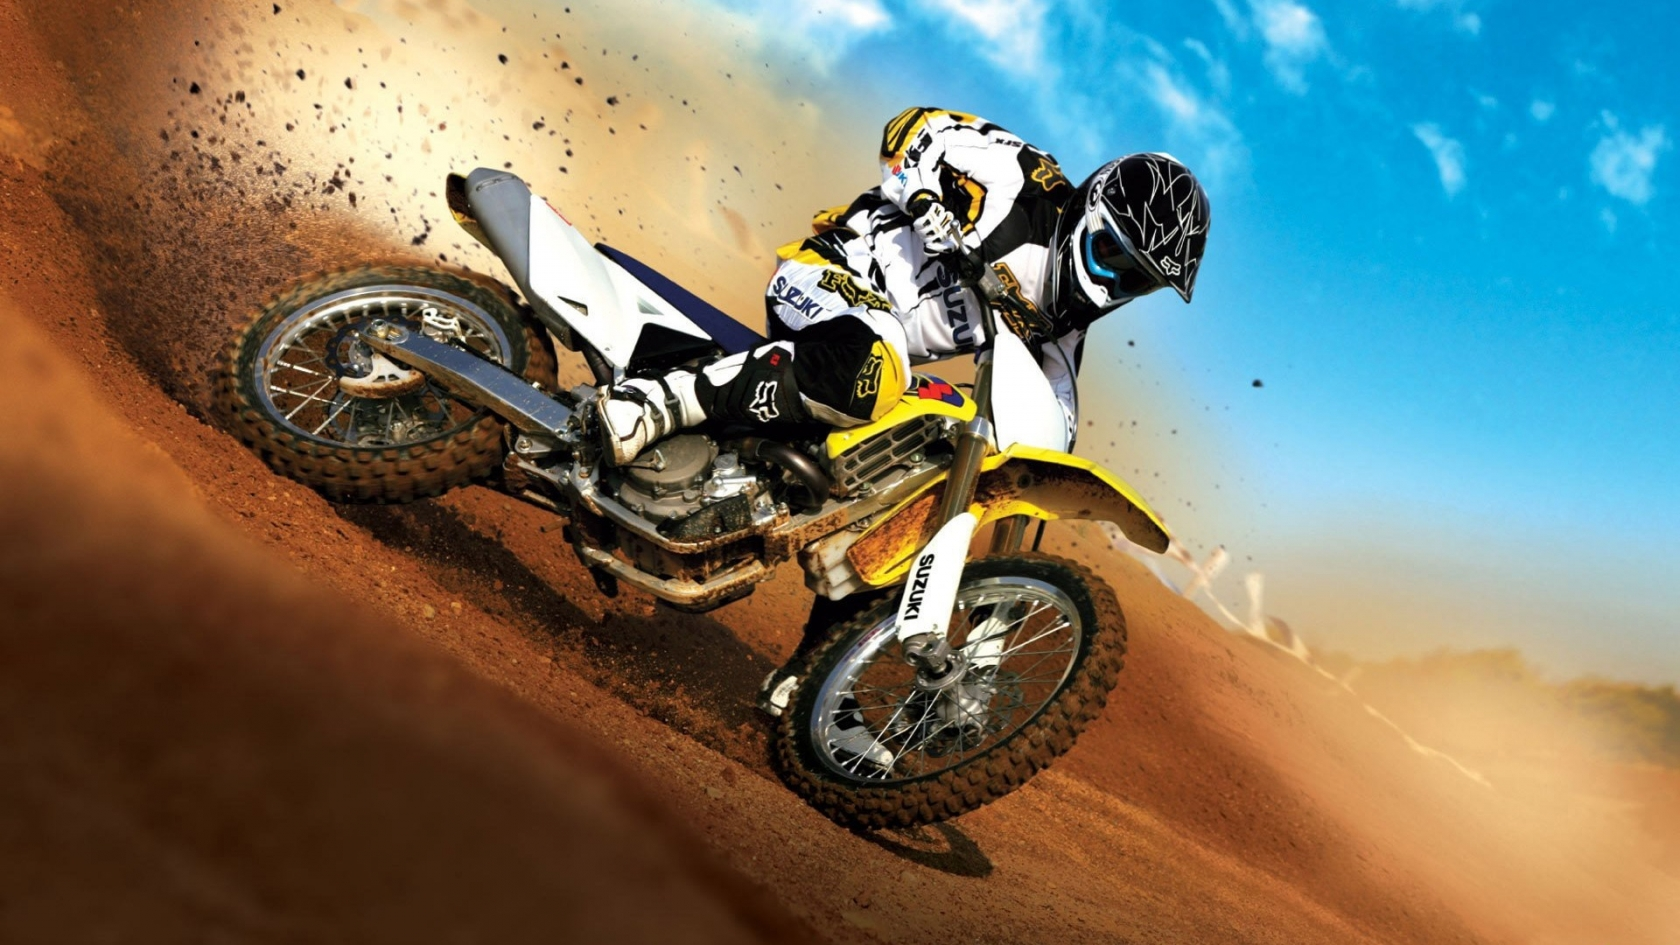 Moto Sports for 1680 x 945 HDTV resolution